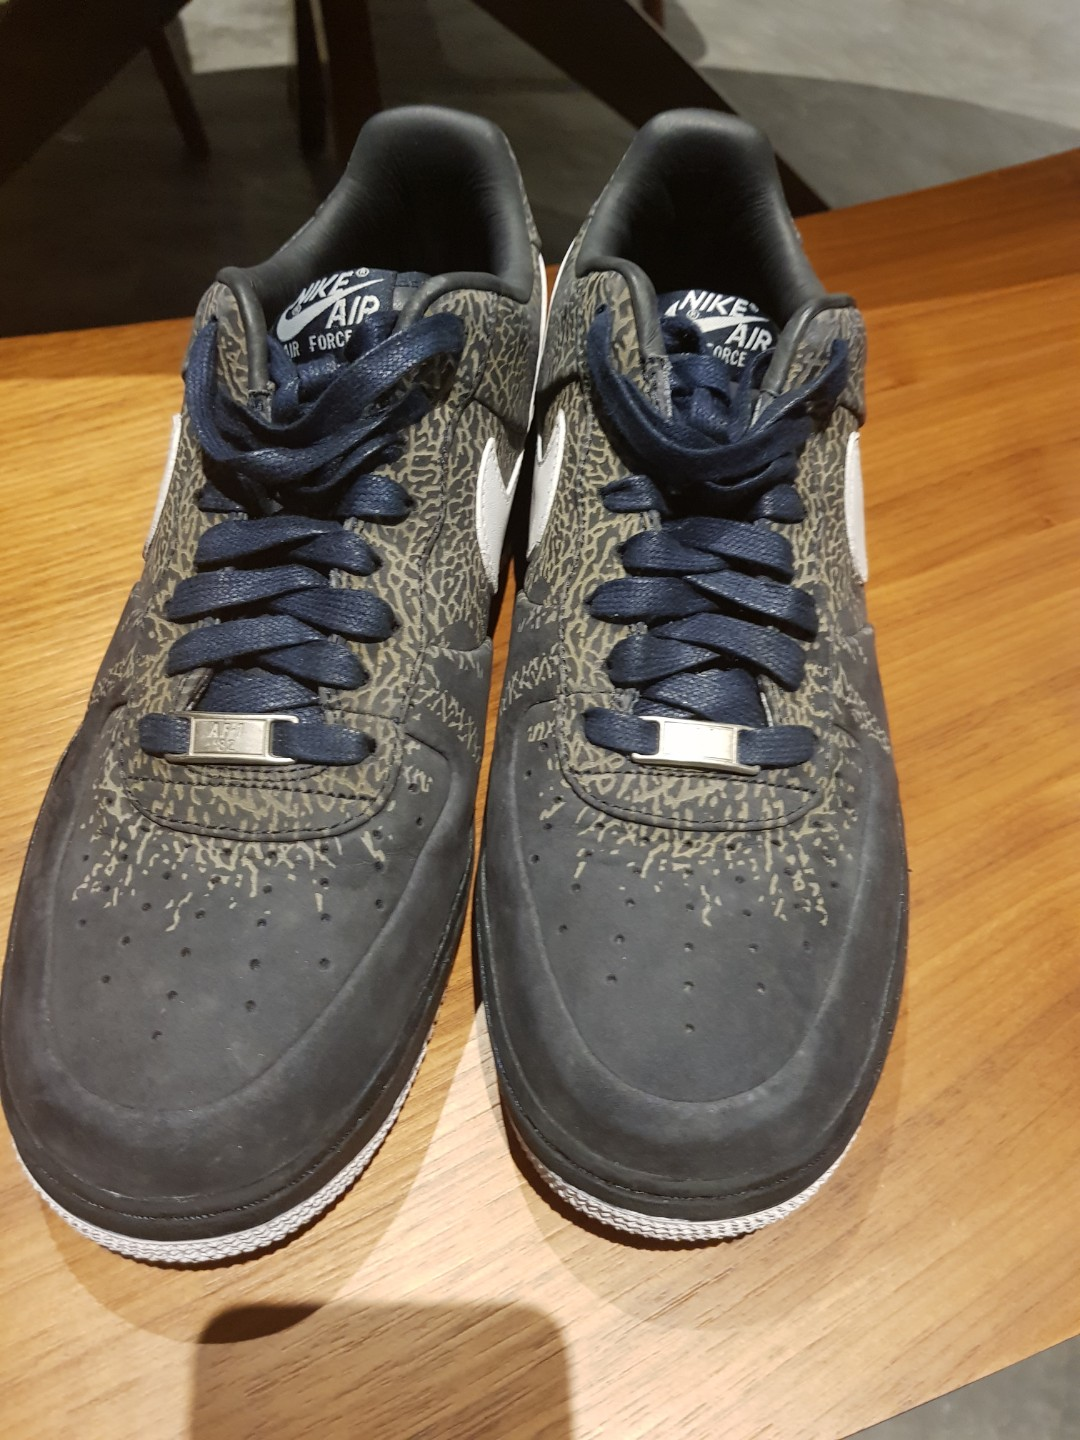 d5f4dfc4fa Nike Air Force 1, Men's Fashion, Footwear, Sneakers on Carousell